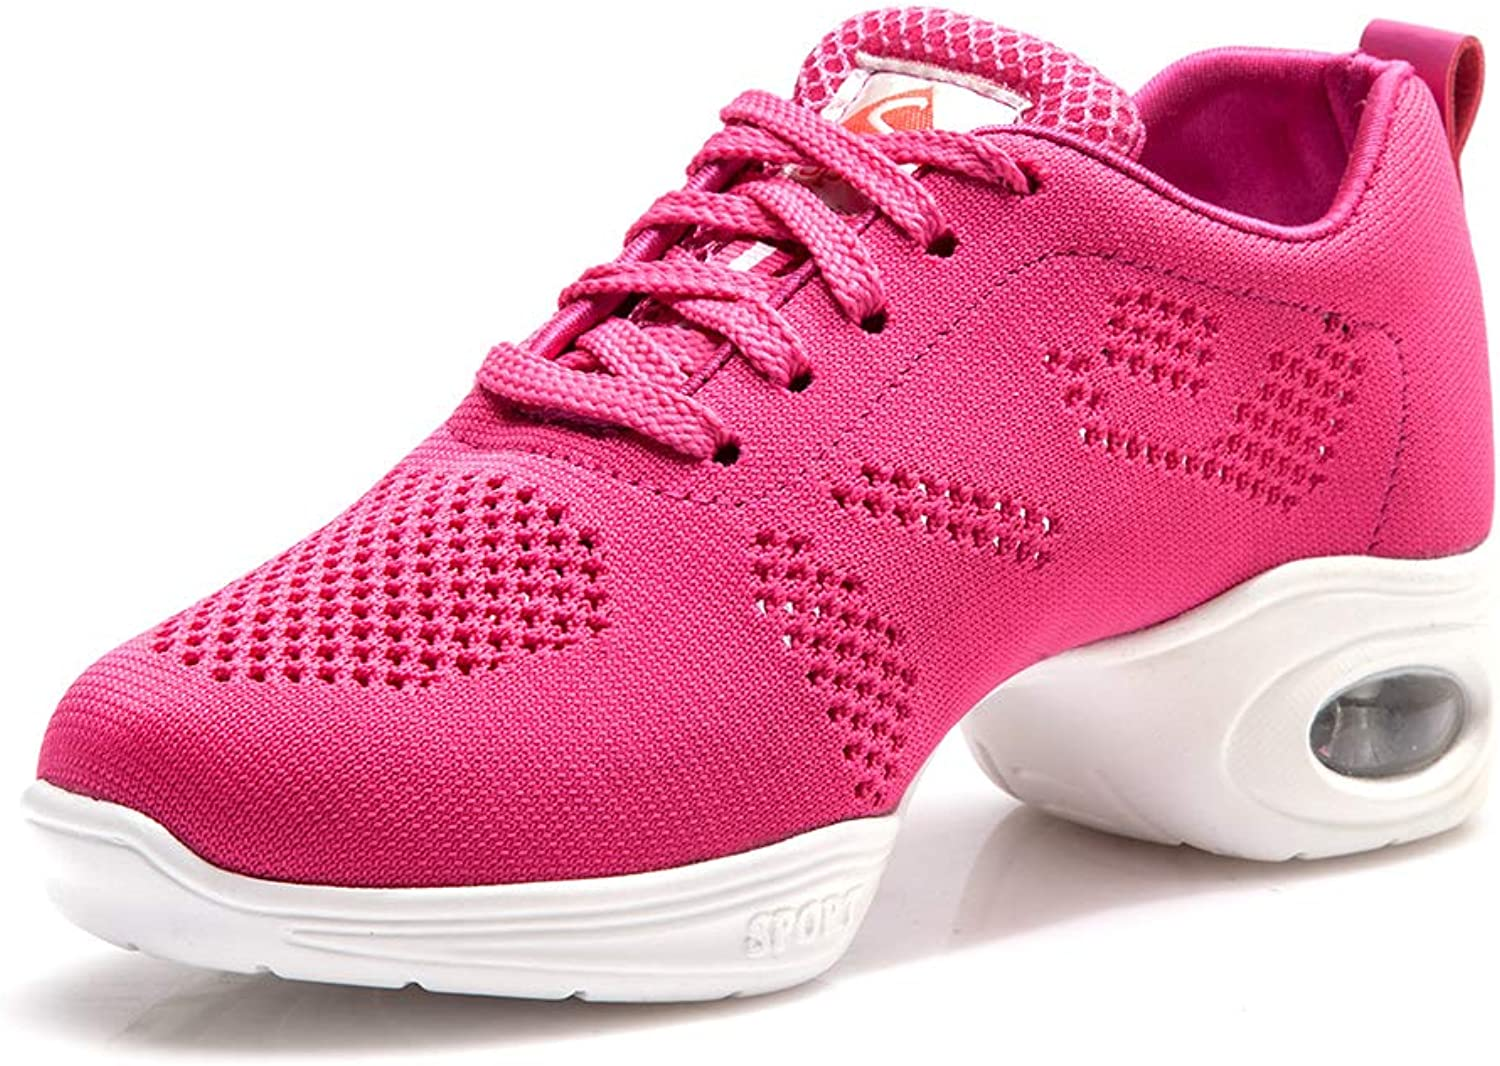 HIPPOSEUS Womens Boost Mesh Split Sole Jazz shoes Lace Up Comfortable Dance Sneakers for Girls,Model T19A